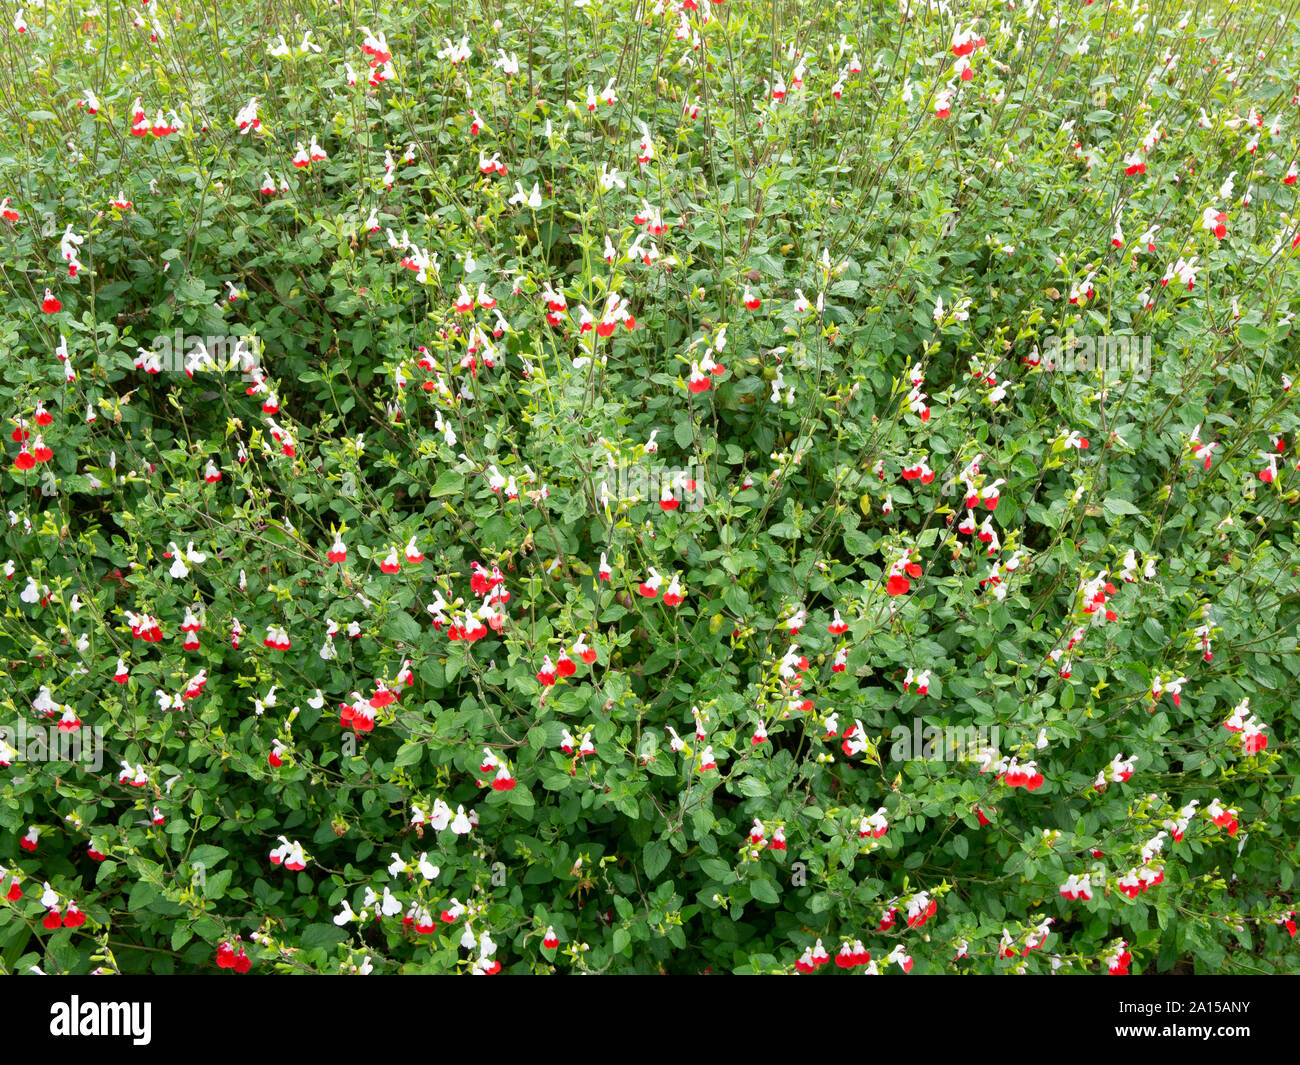 A large plant of Salvia Hot Lips showing the characteristic small red and white flowers Stock Photo